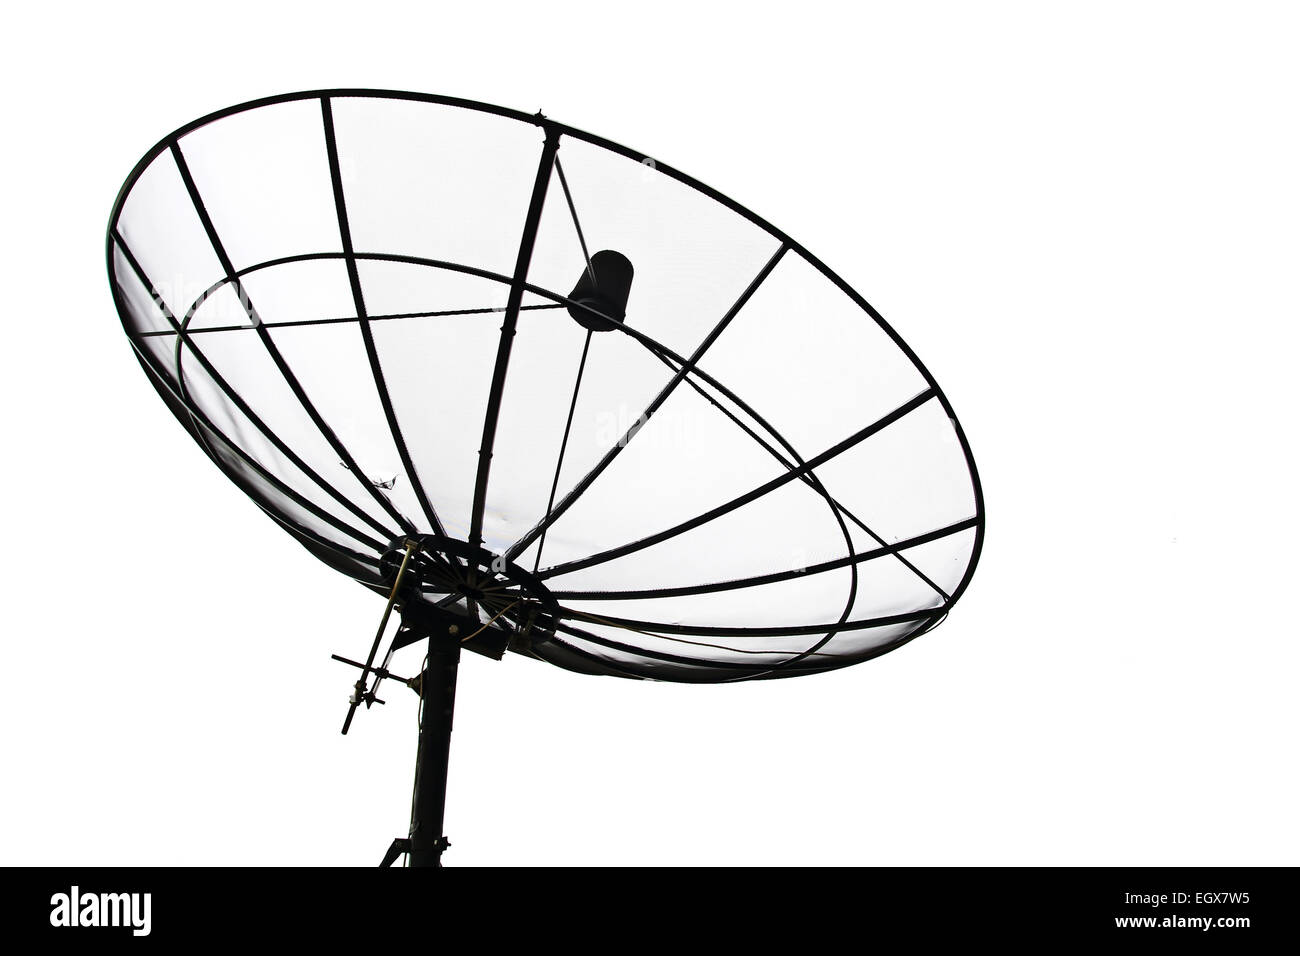 Satellite Dish isolated on White sky - Stock Image